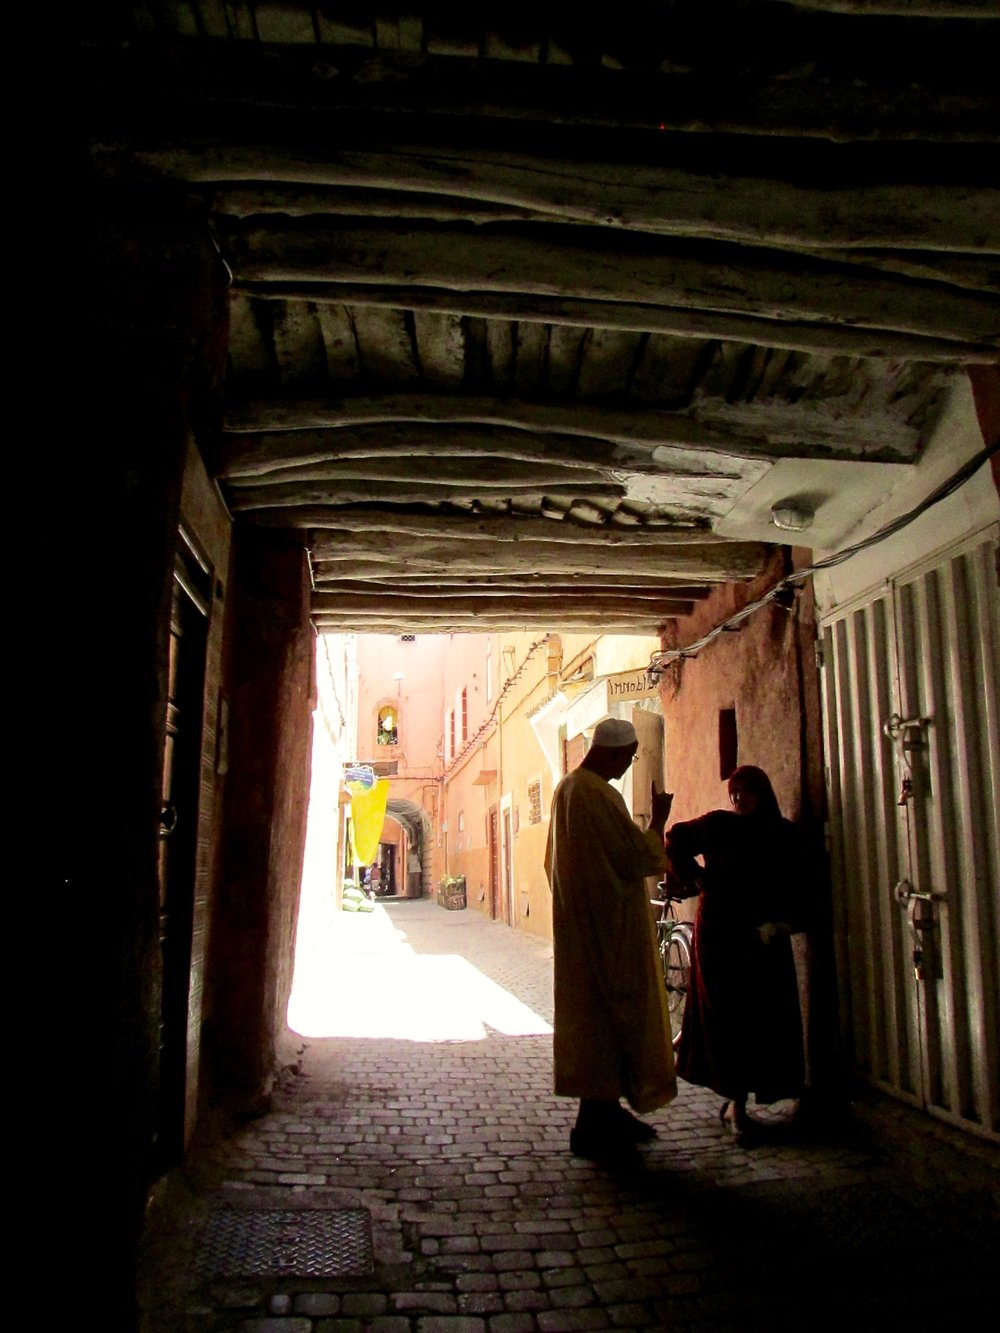 The narrow streets in the Marrakech Medina